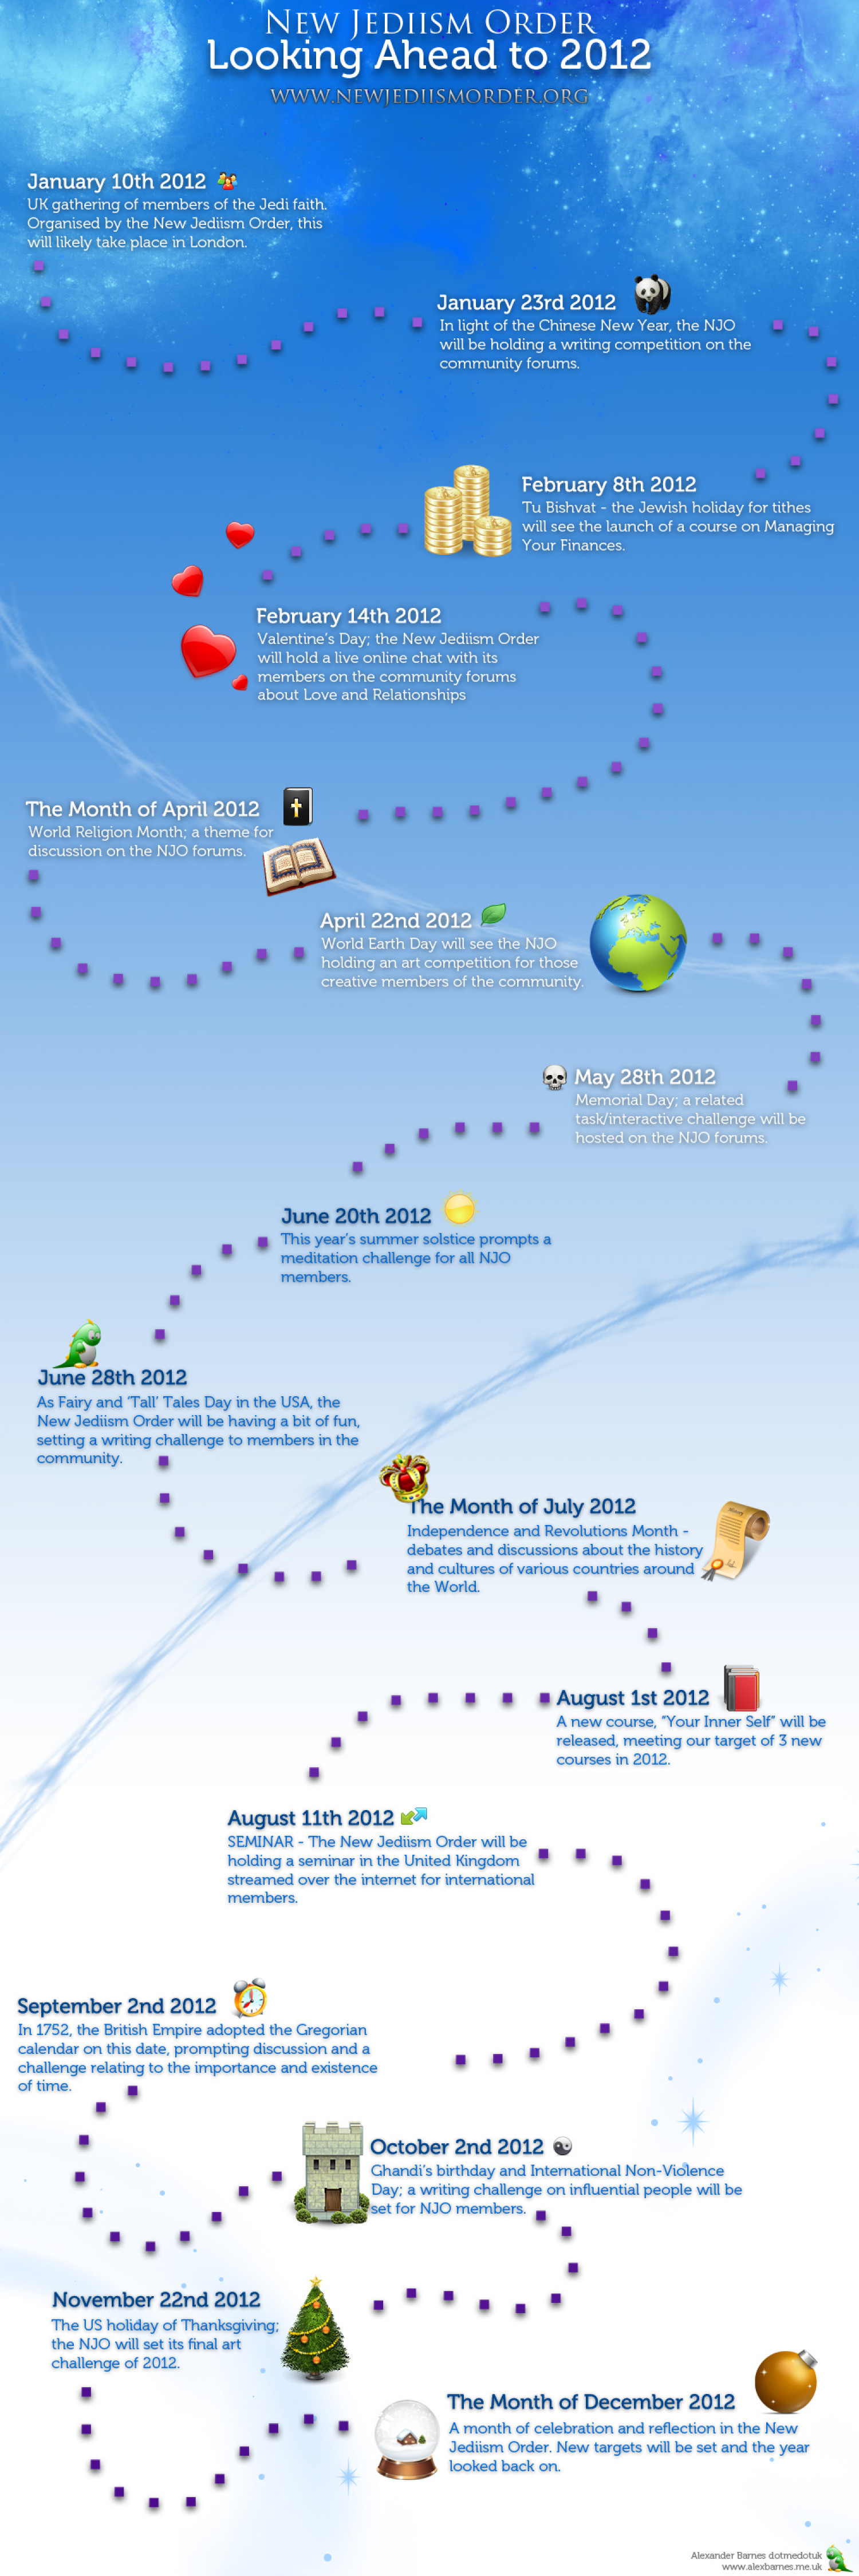 New Jediism Order - Looking Ahead to 2012 Infographic Infographic